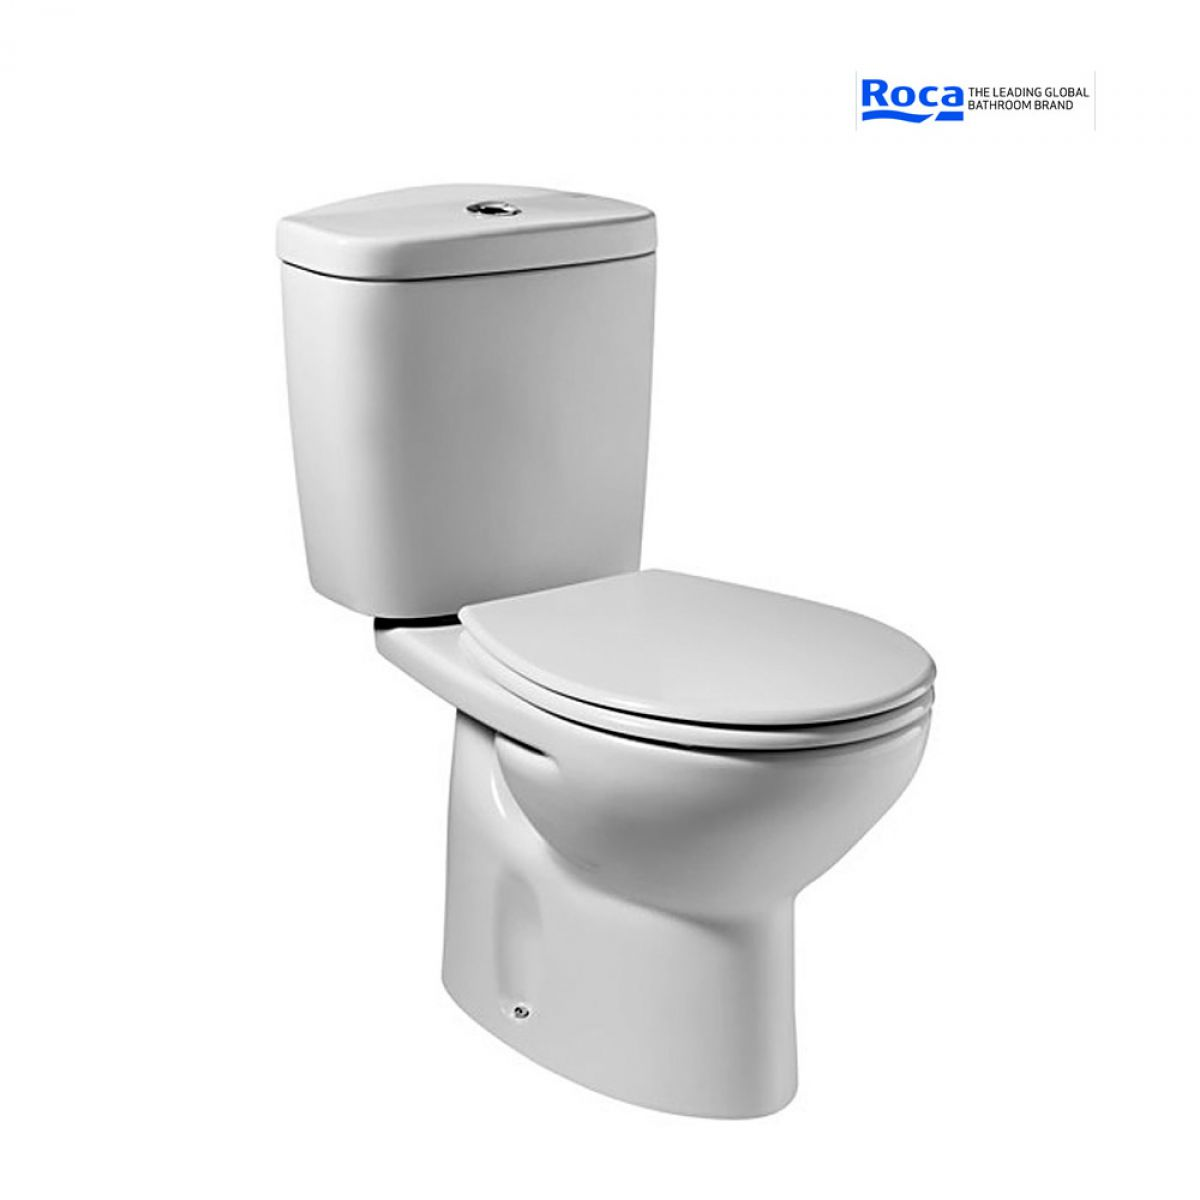 Roca laura close coupled toilet uk bathrooms for Inodoro victoria precio